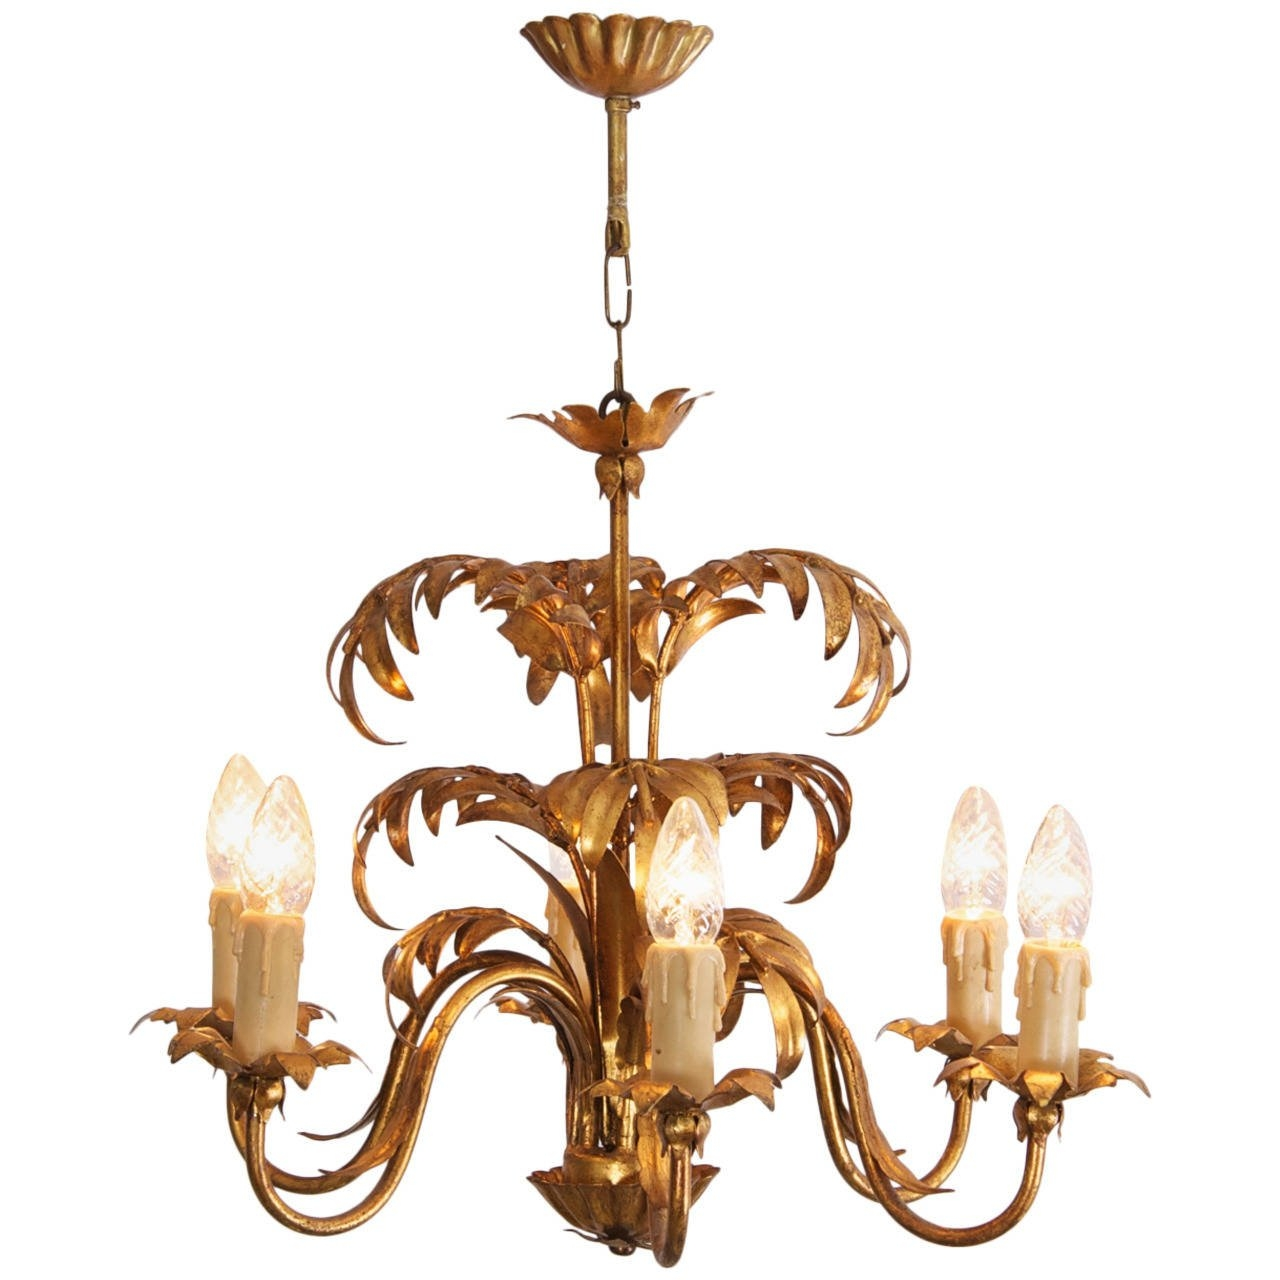 Palm Beach Frond Tree Leaf Leaves Chandelier Metal Tole Vintage Regarding Chinoiserie Chandeliers (Image 17 of 25)